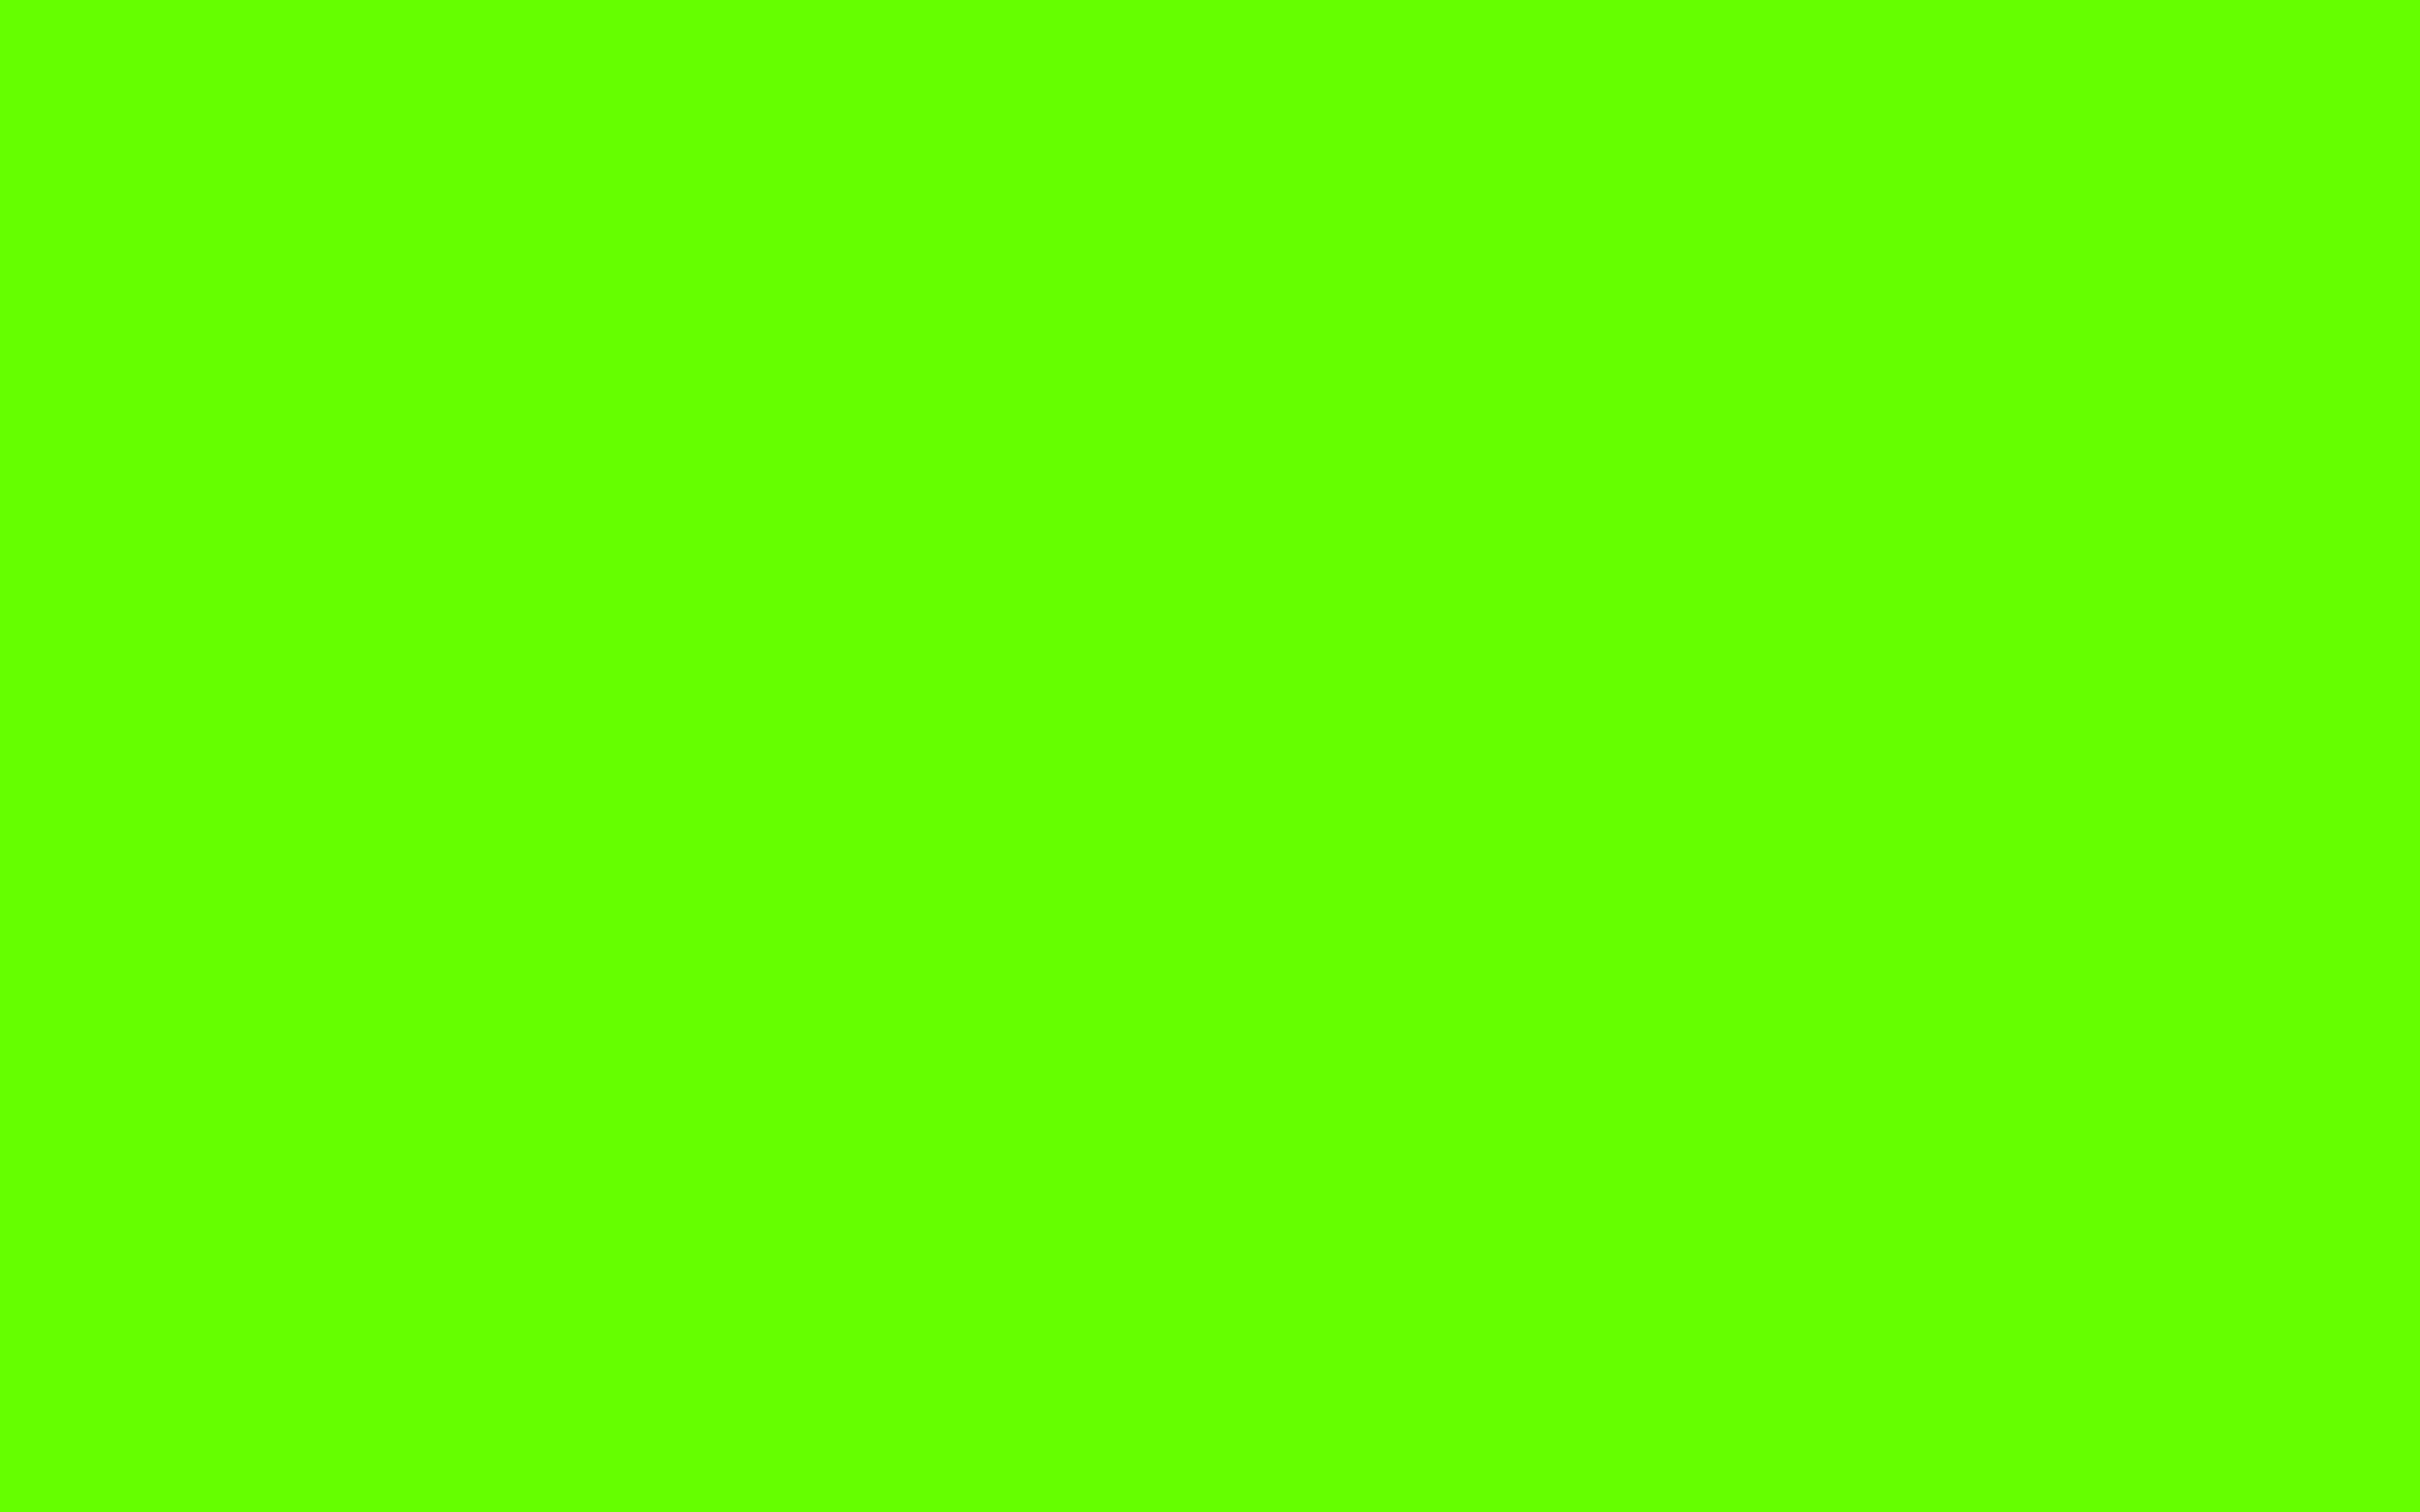 HAVE YOU EVER EVEN SEEN SUCH A GREEN?!?! | Solid color ... |Bright Green Color Background